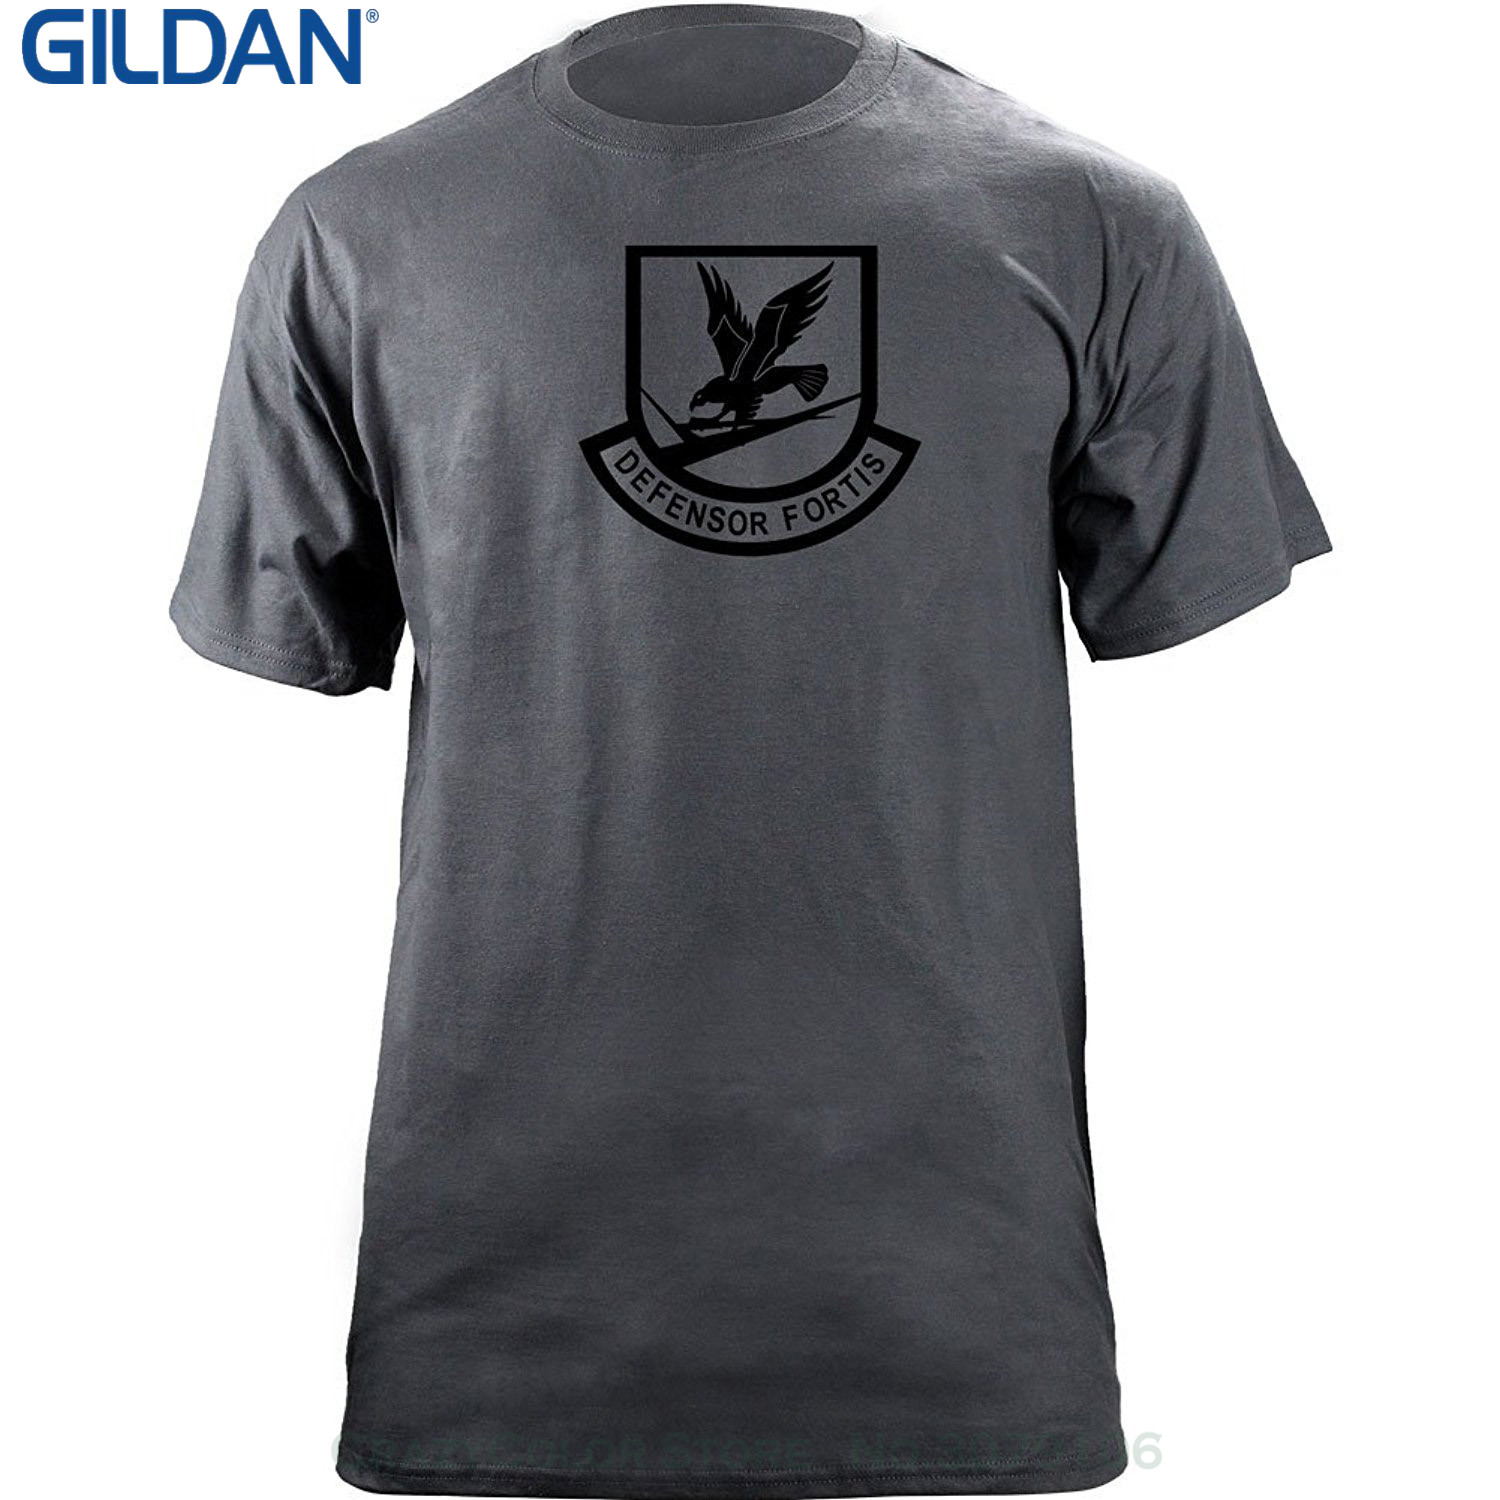 Black t shirt security - Gildan Design T Shirt Men S High Quality Security Force Air Force Subdued Veteran Patch T Shirt